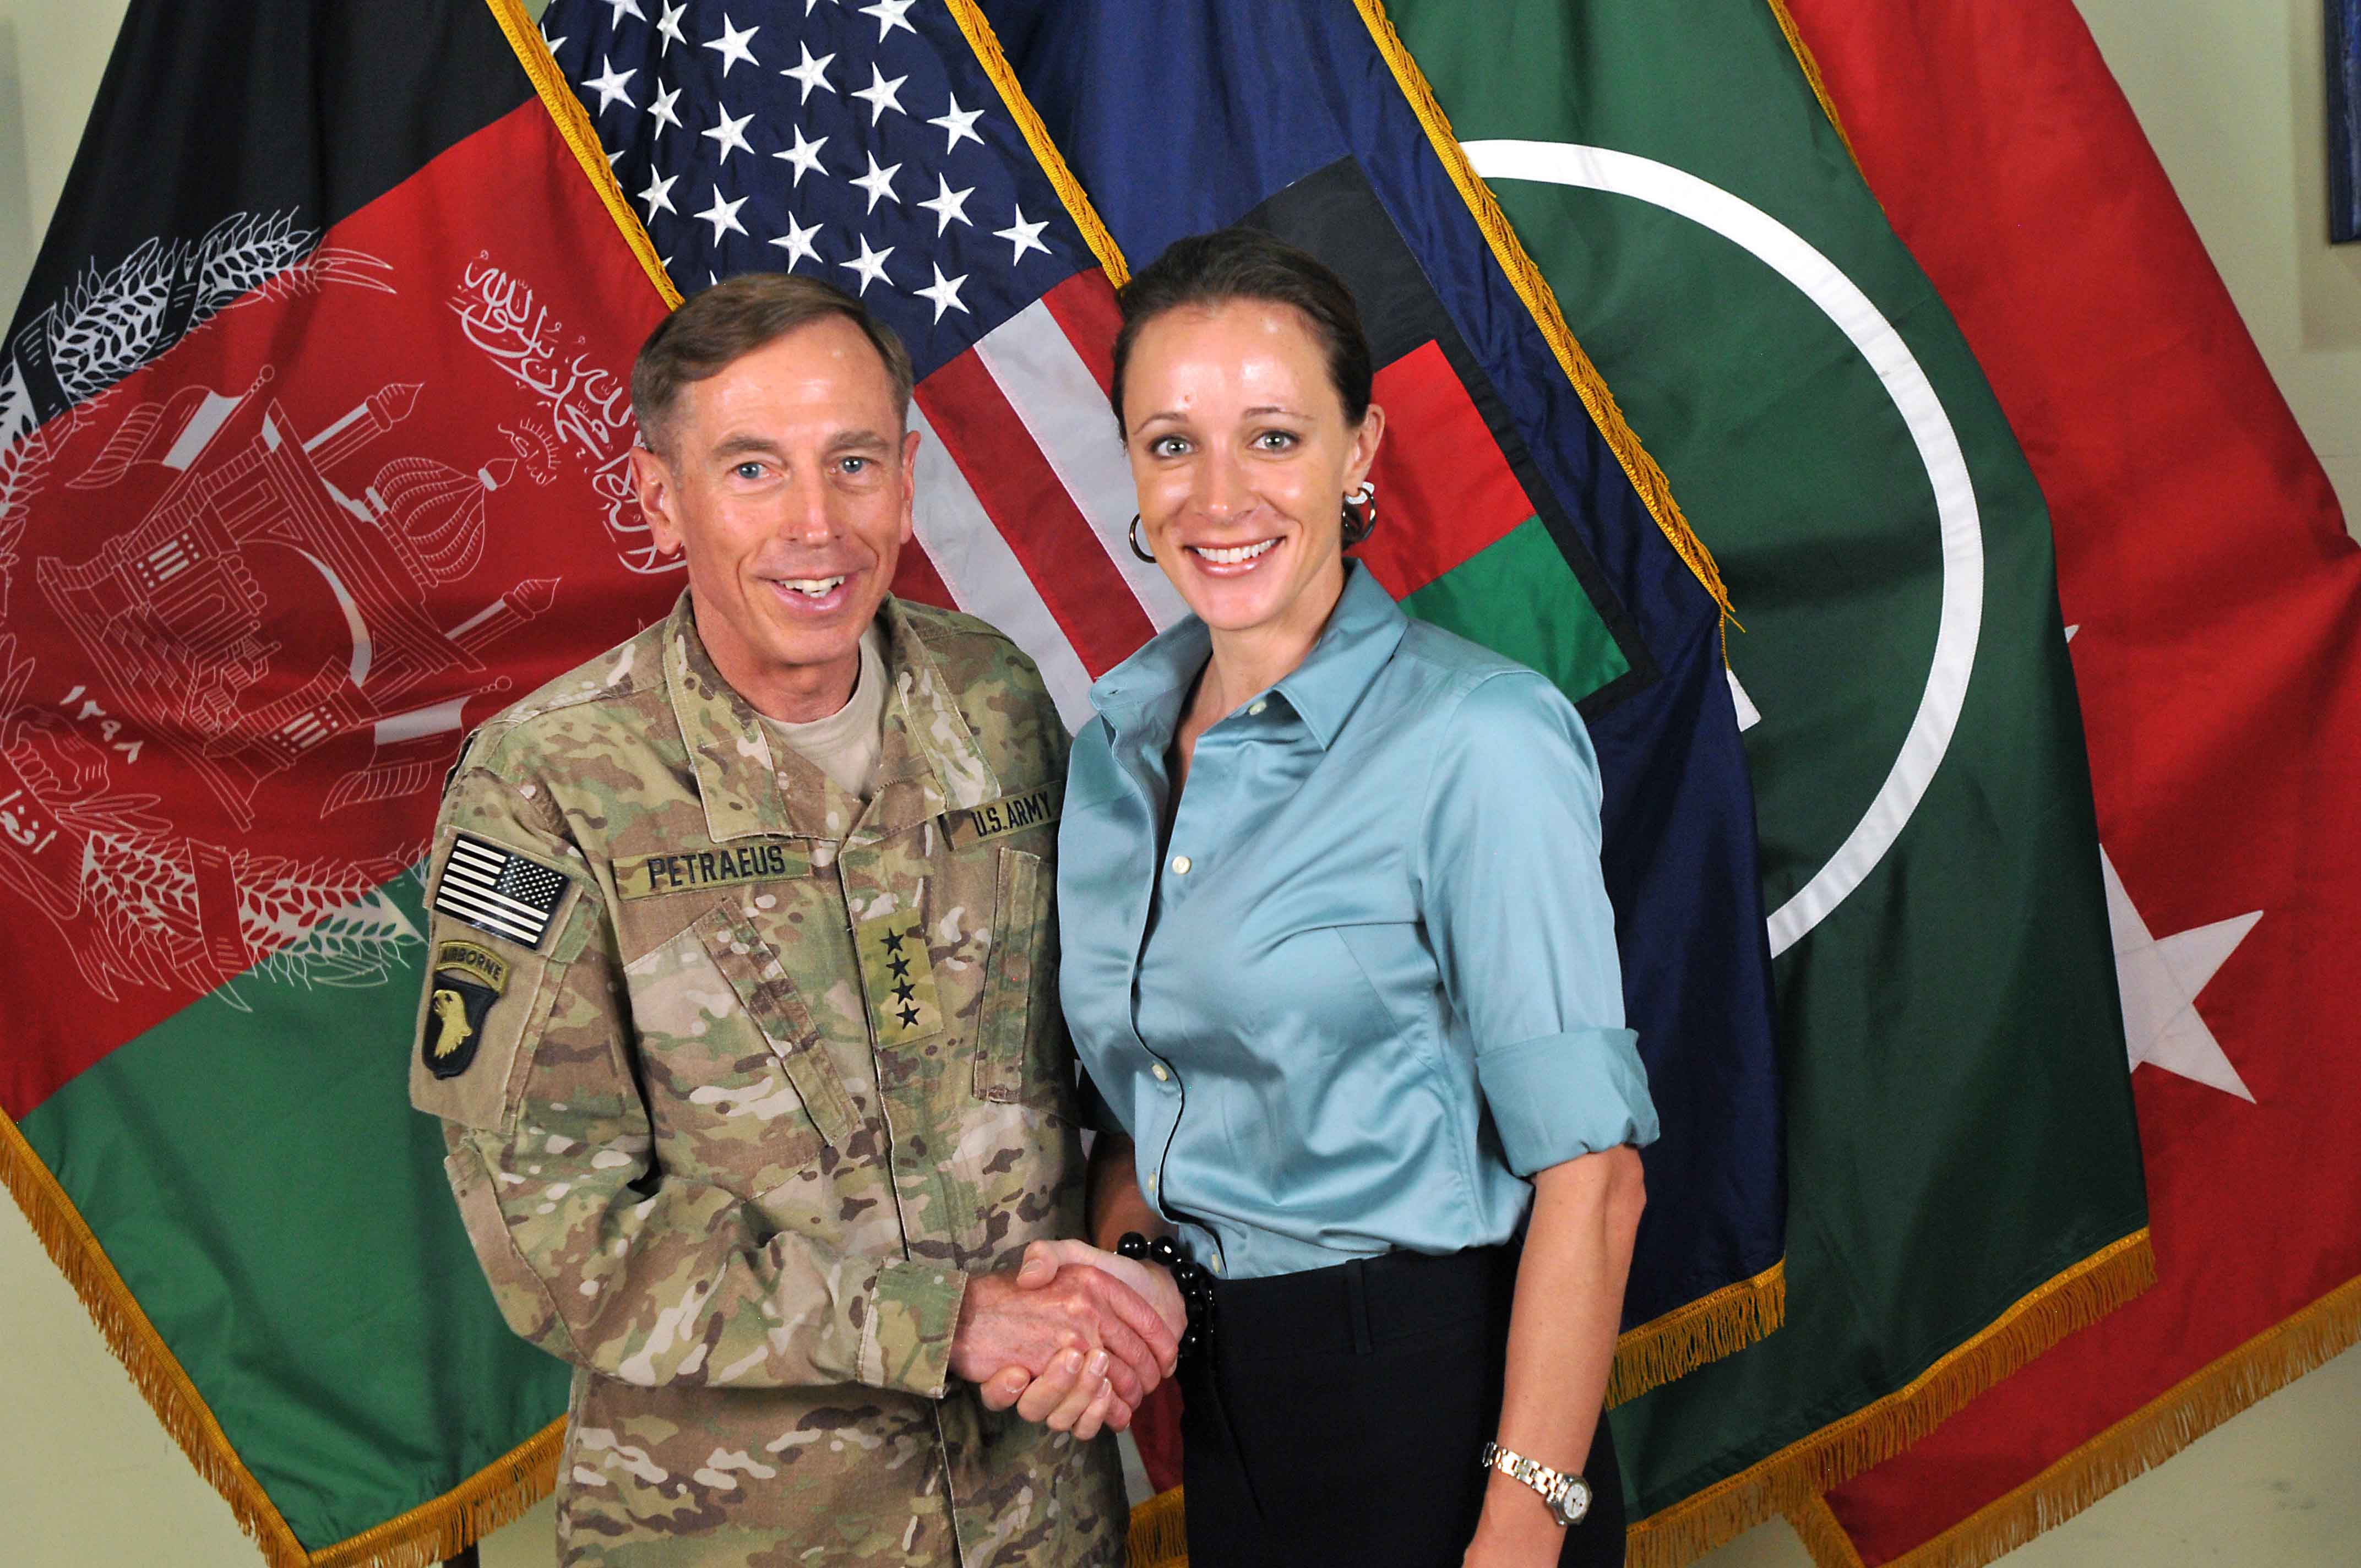 CIA Director Gen. David Petraeus Resigns After Affair with Paula Broadwell